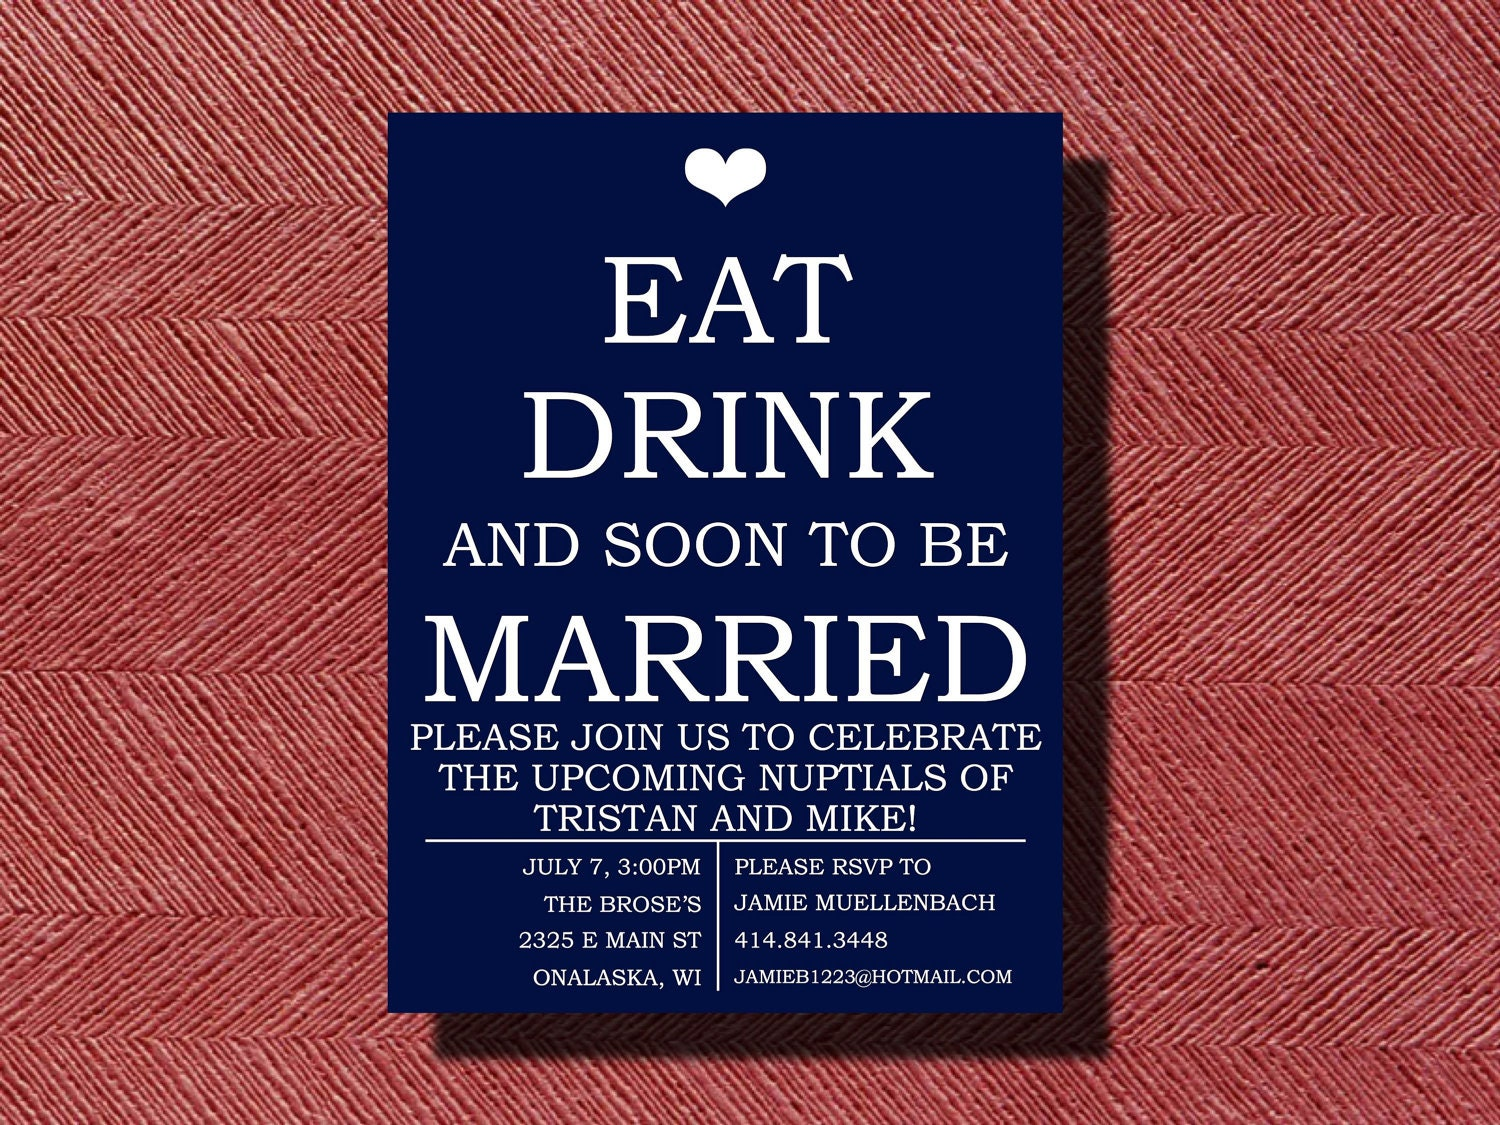 Engagement Party Invitation Eat Drink and be Married – Creative Engagement Party Invitations